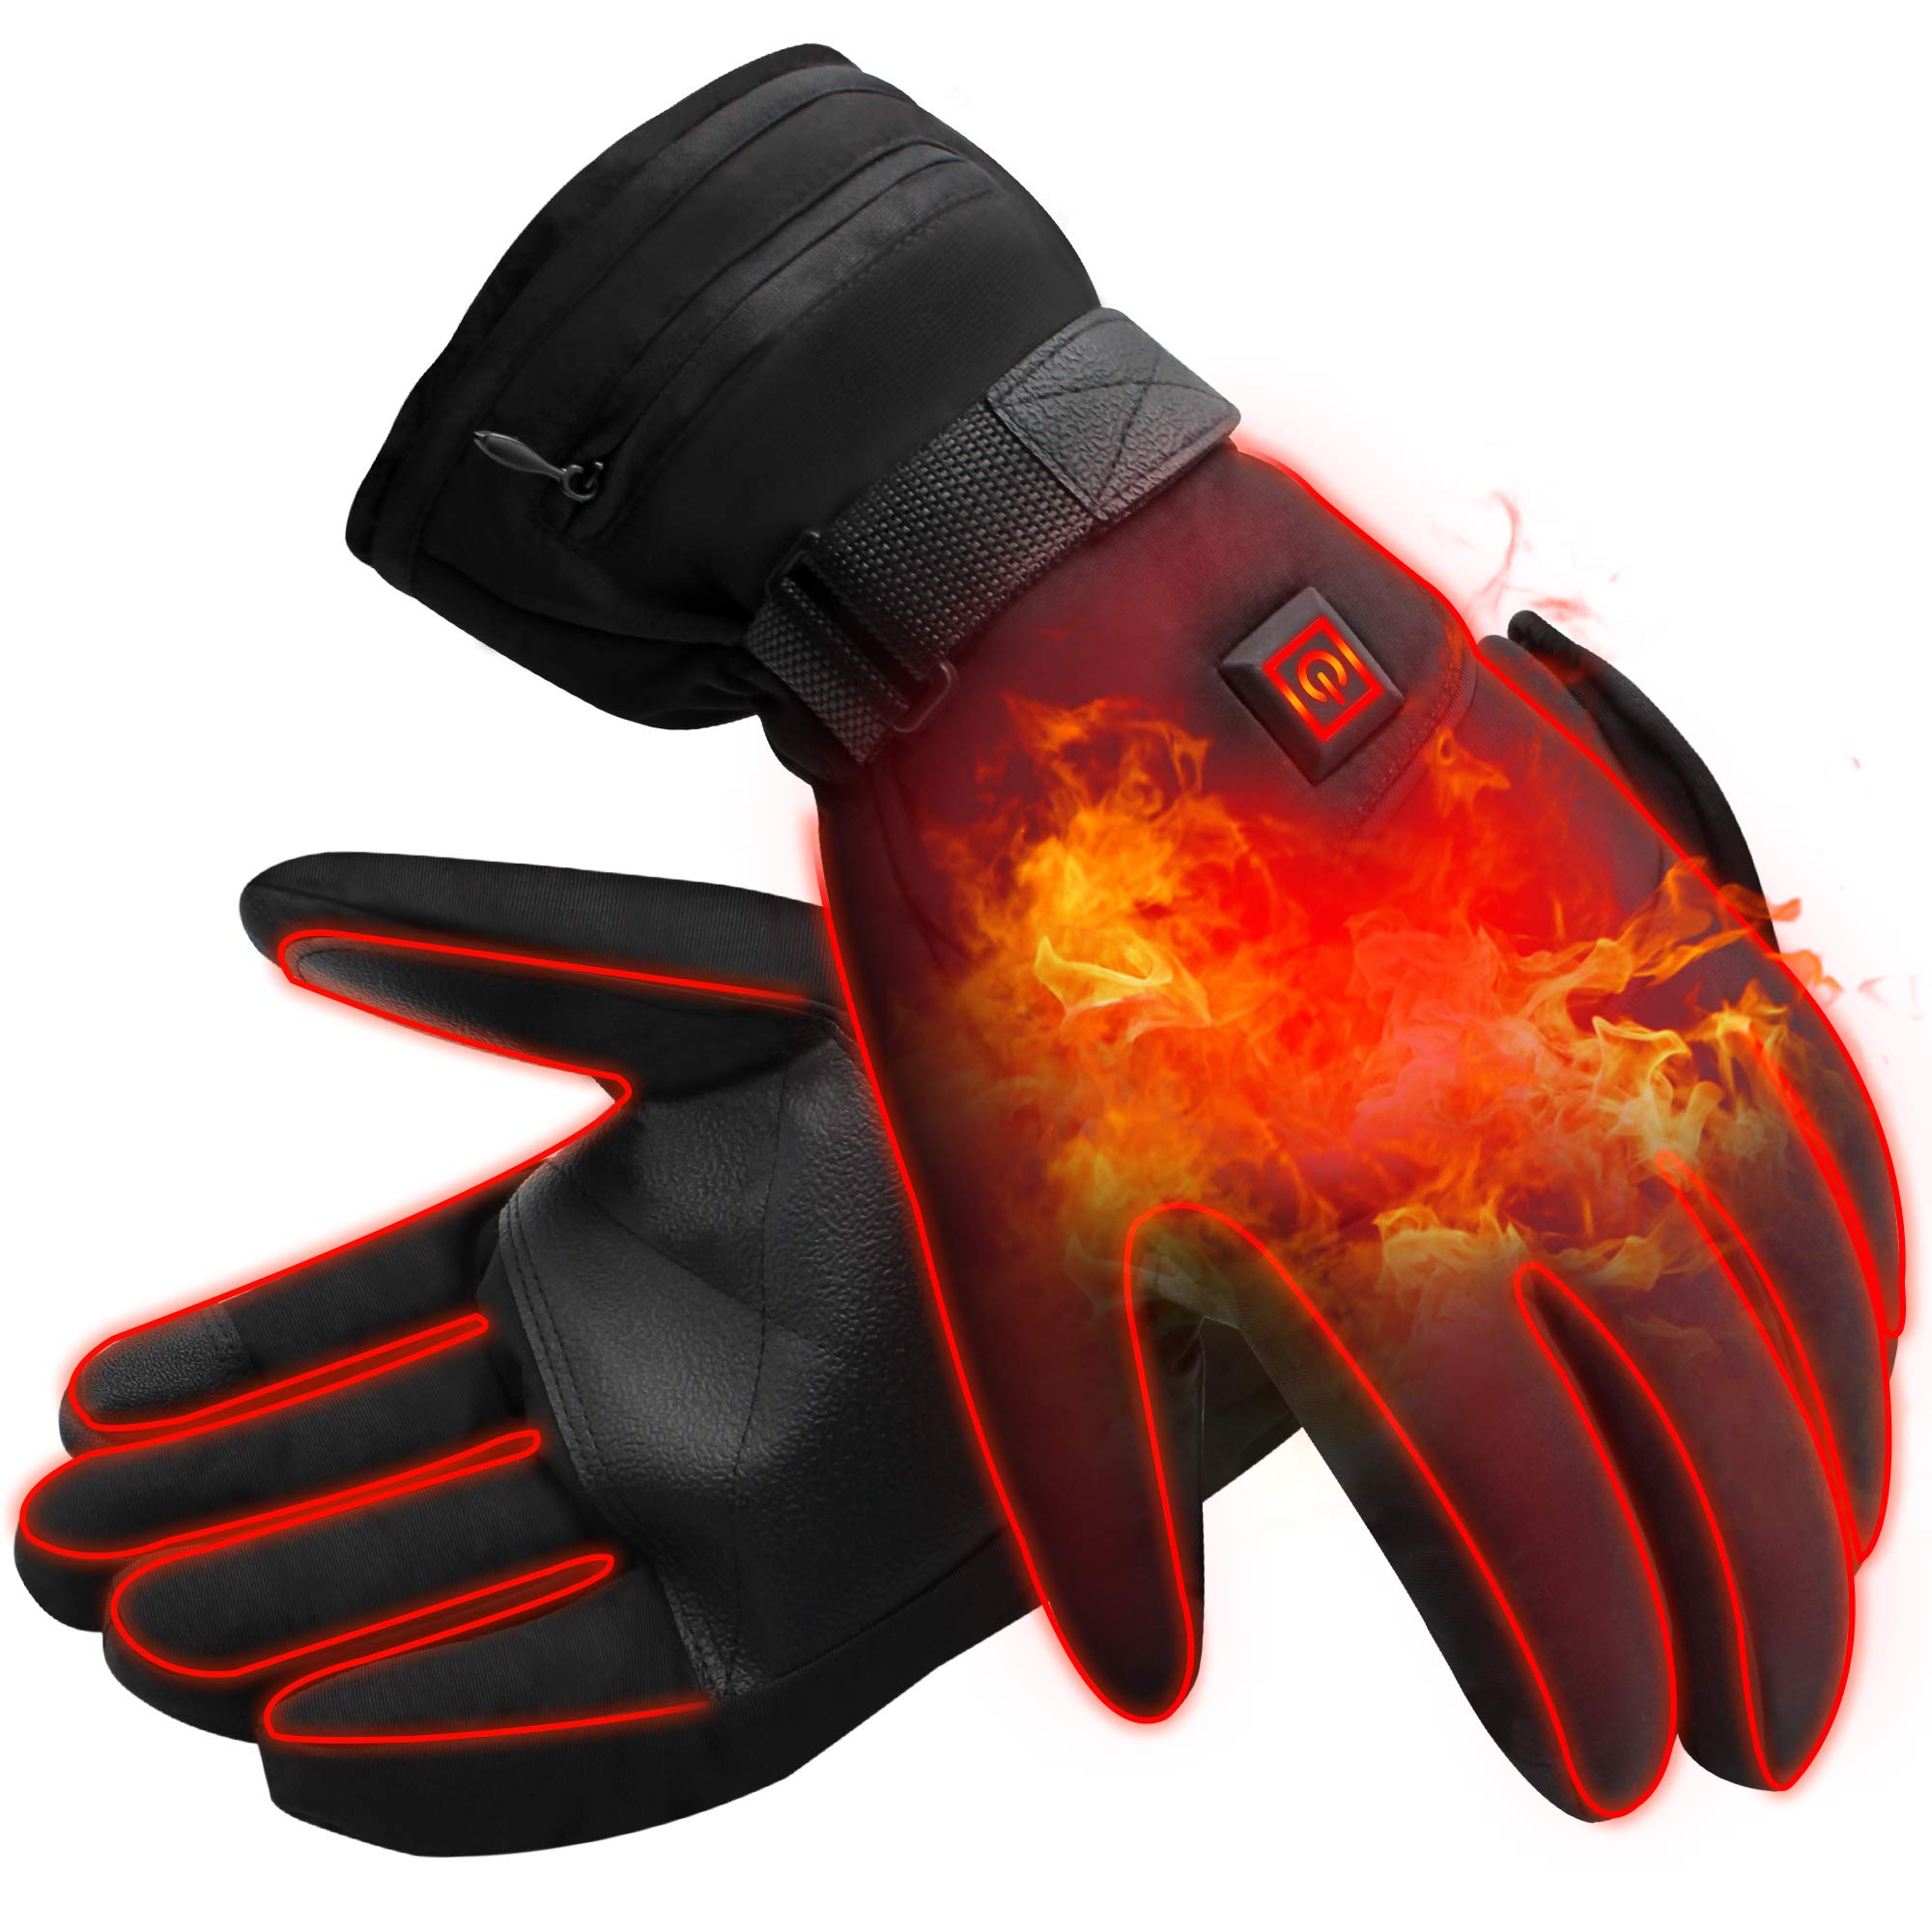 IFWATER Men Woman Electric Gloves Hand Warmer Heated Gloves with 3 Heating Levels Temperature Adjustable,3.7V Rechargeable Batteries Motocycle Gloves for Hunting Skiing Hiking Camping (3.7V-B) by IFWATER